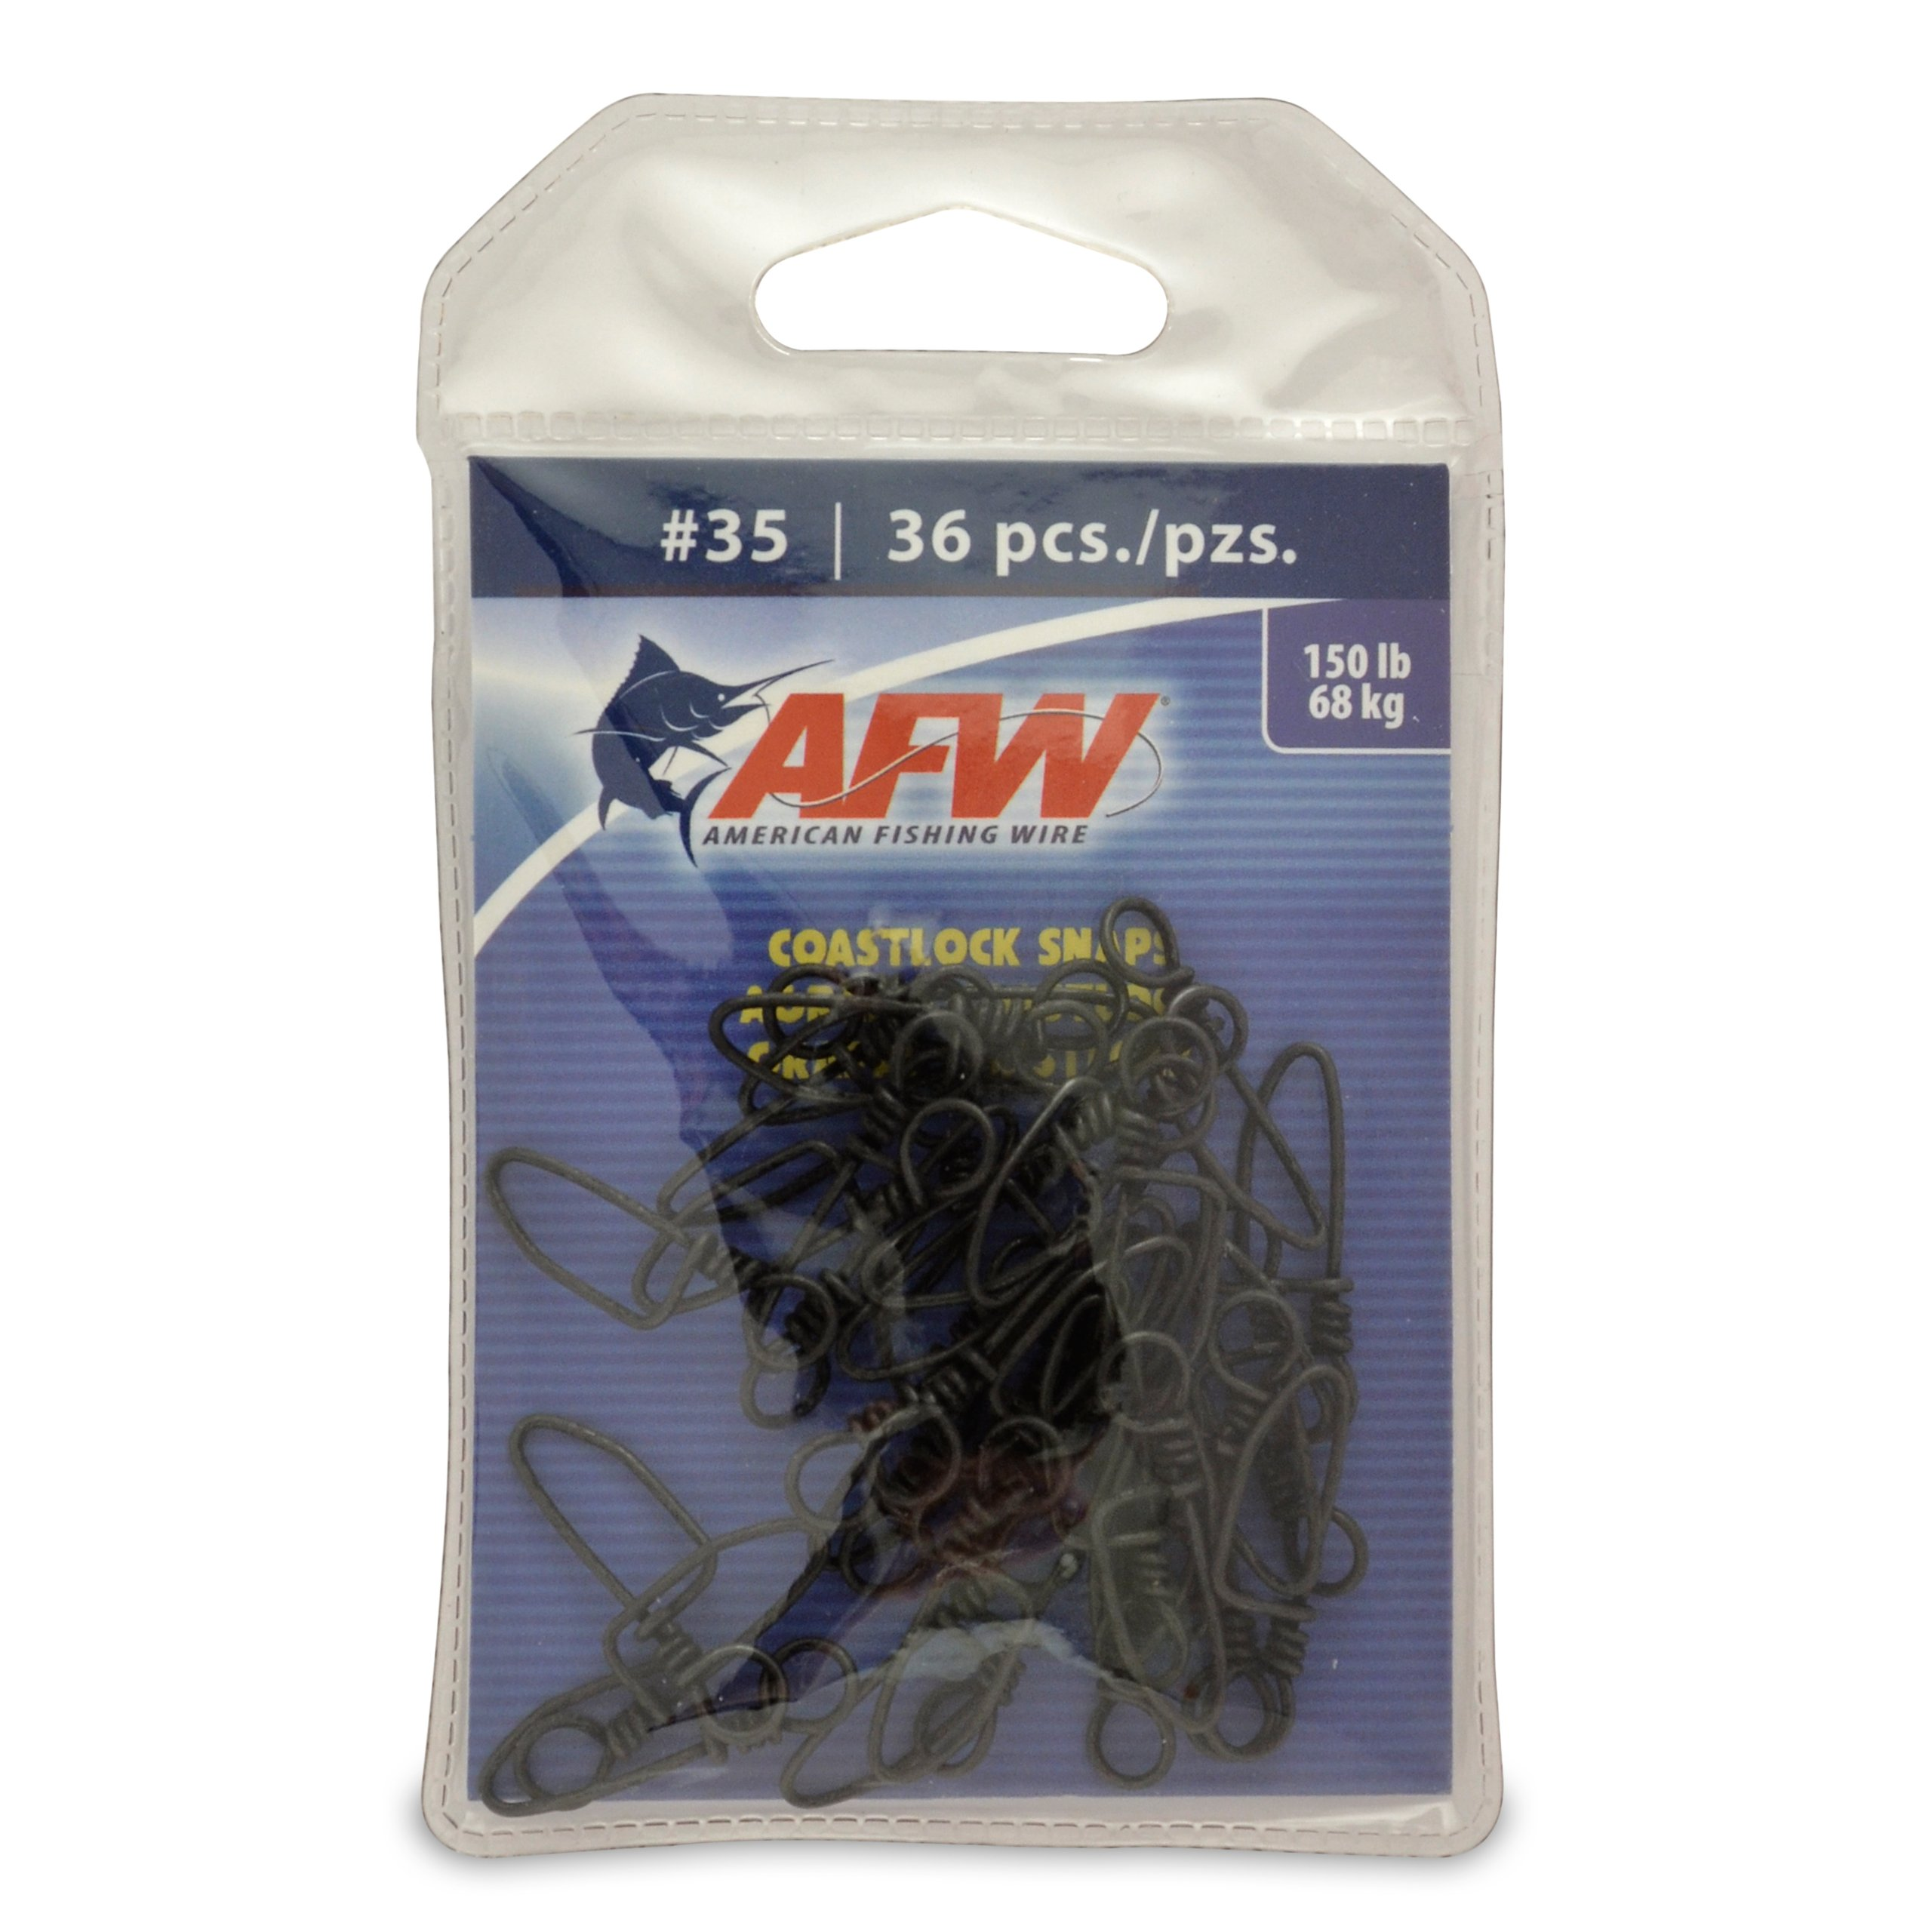 American Fishing Wire Brass Coastlock Snaps, Black Color, Size 35, 150 Pound Test, 36-Pieces